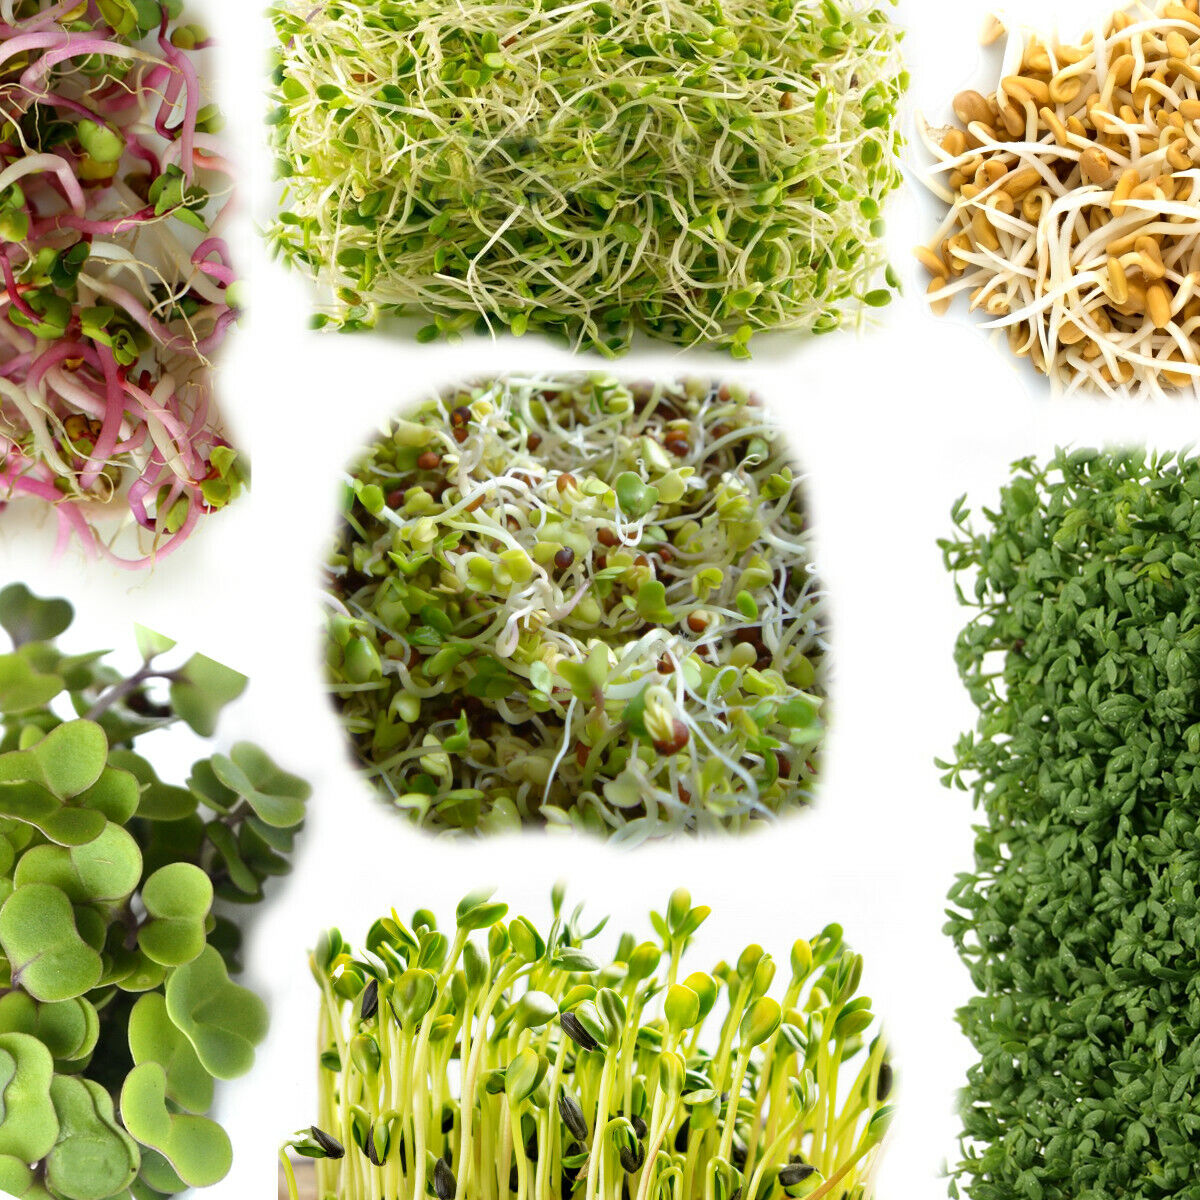 Organic Seeds for Sprouting Sprouts, Microgreens, Healthy Salad - 24 types seed